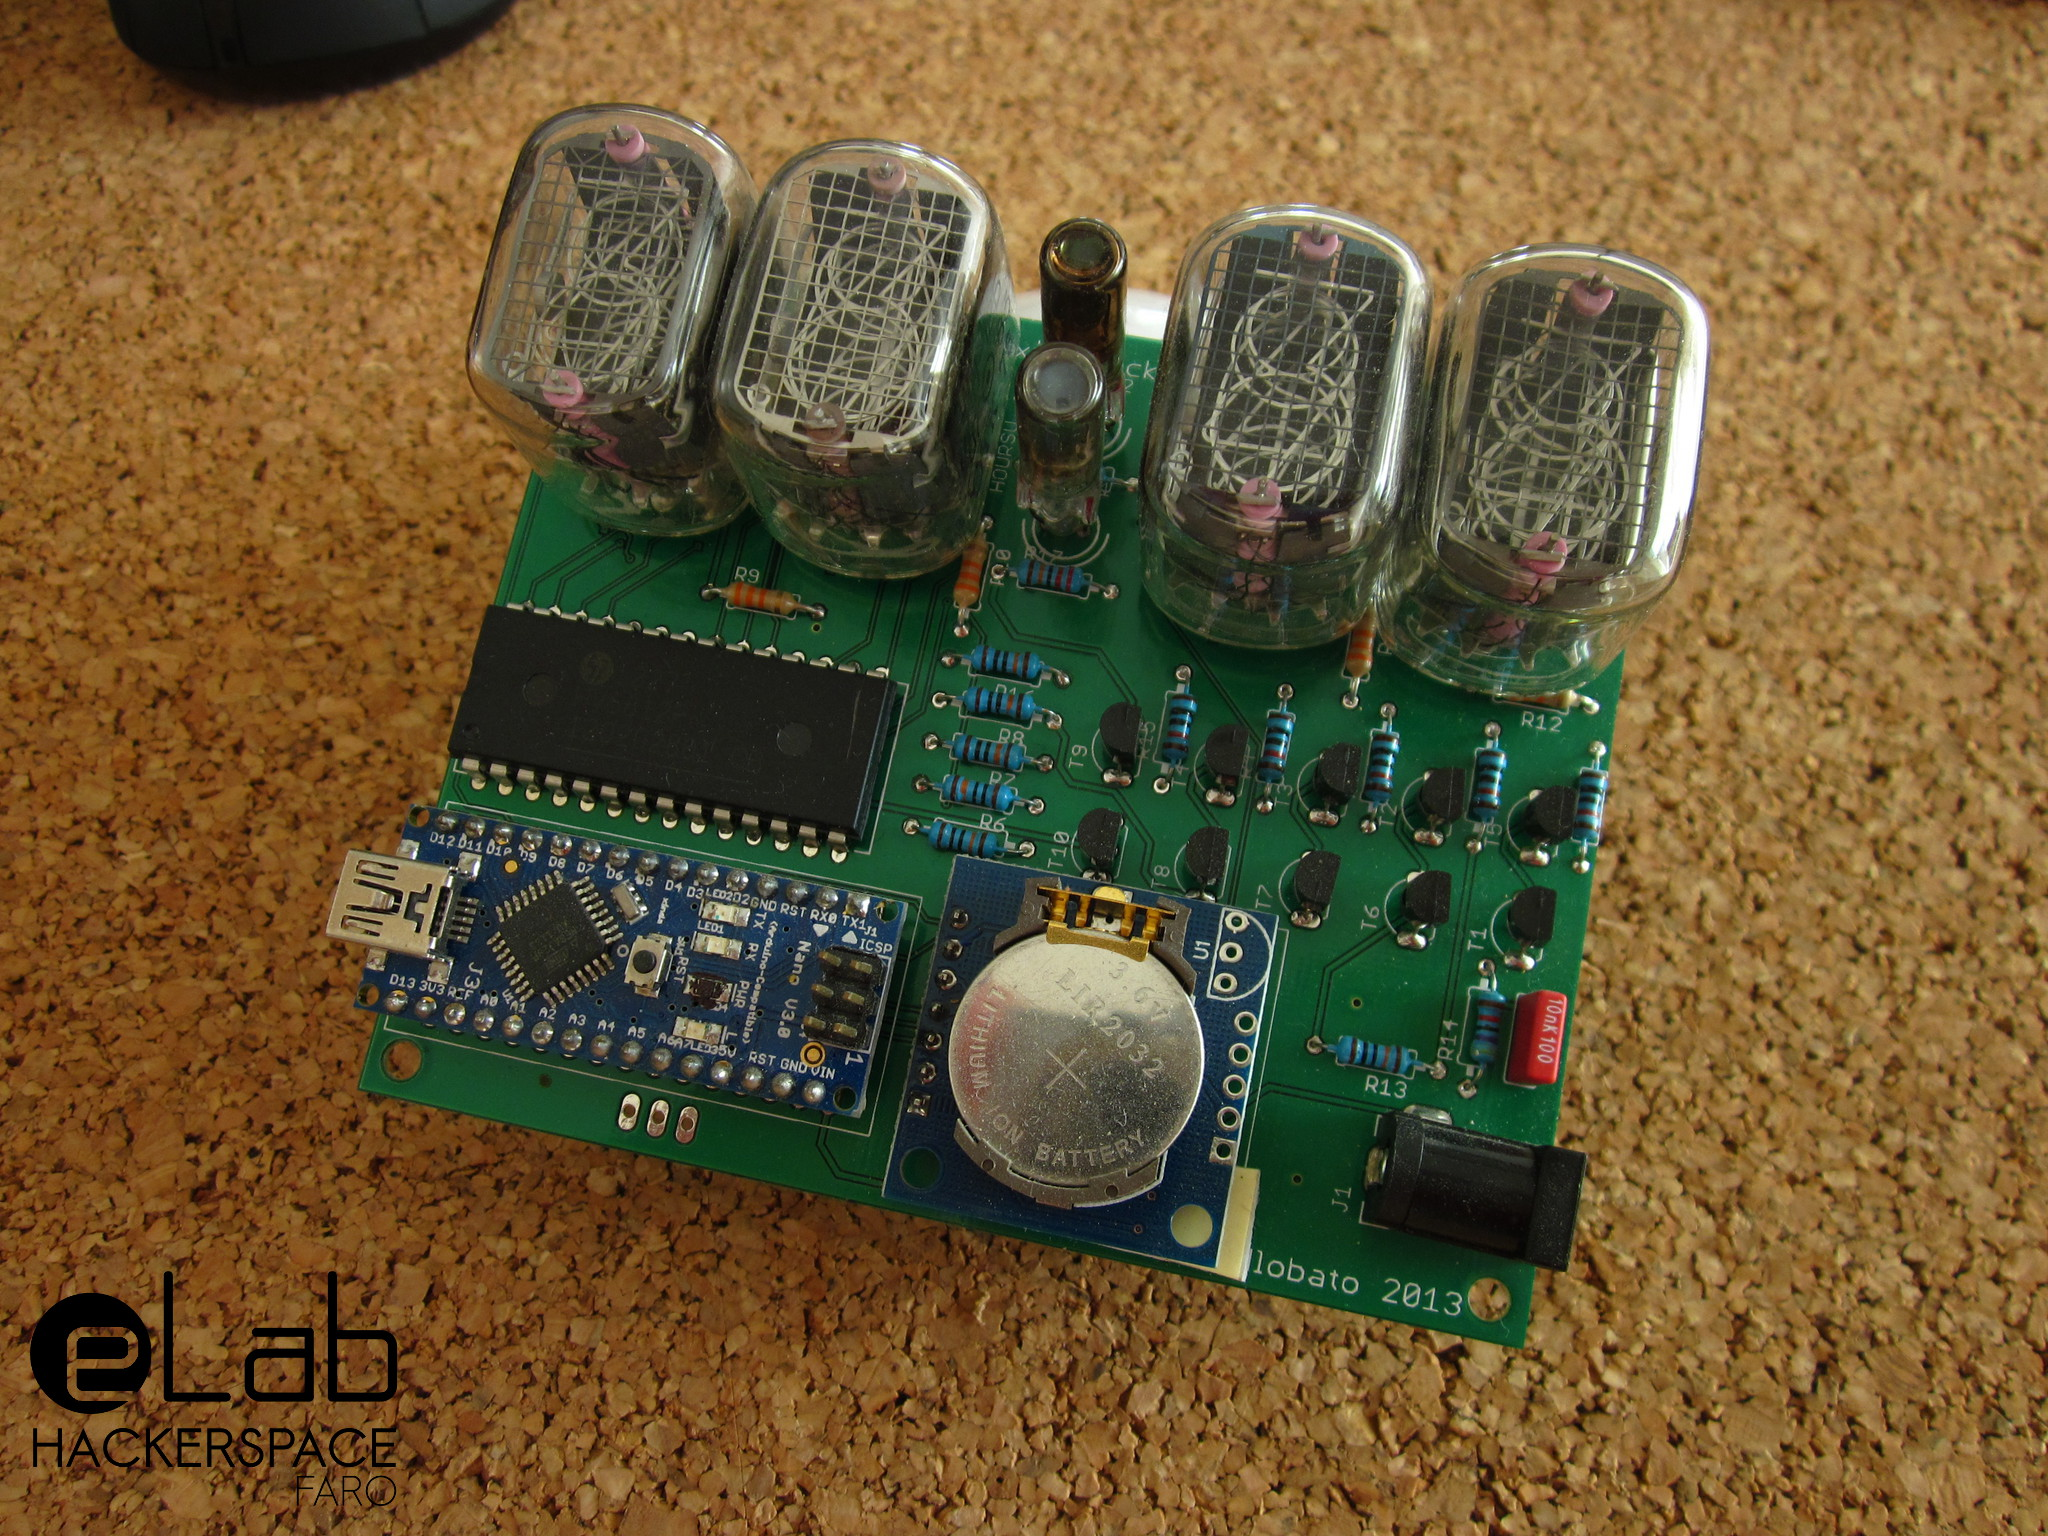 Playing With Nixies Yet Another Nixie Clock Elab Hackerspace Electronics Projects April 2013 This Project Was Shown At Lisbon Maker Faire 2015 Where It Attracted The Attention Of Senior Makers That Remembered Old Days When Used On